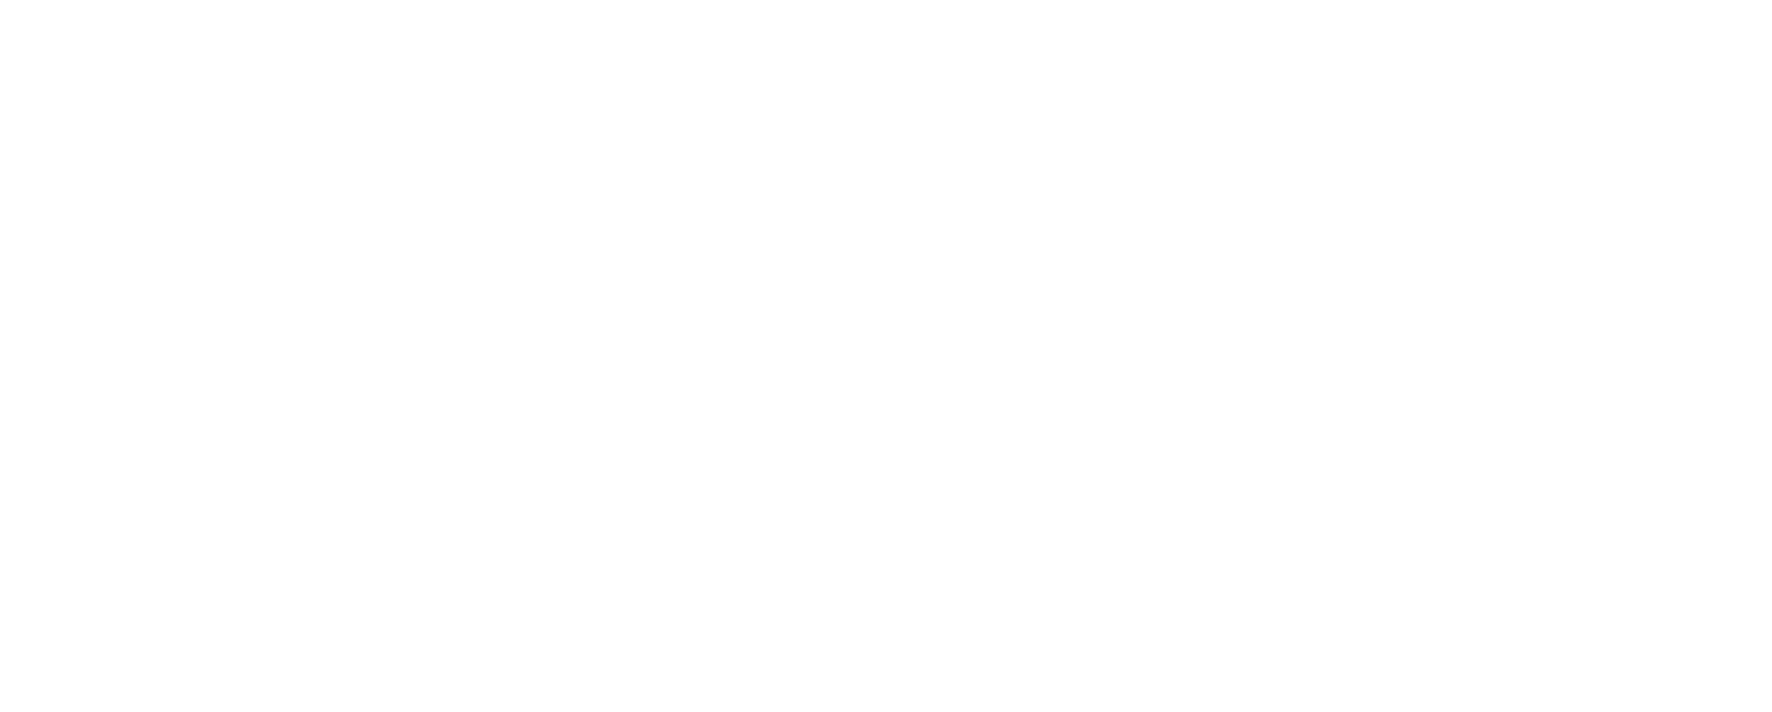 Chubb Cornerstone Producer